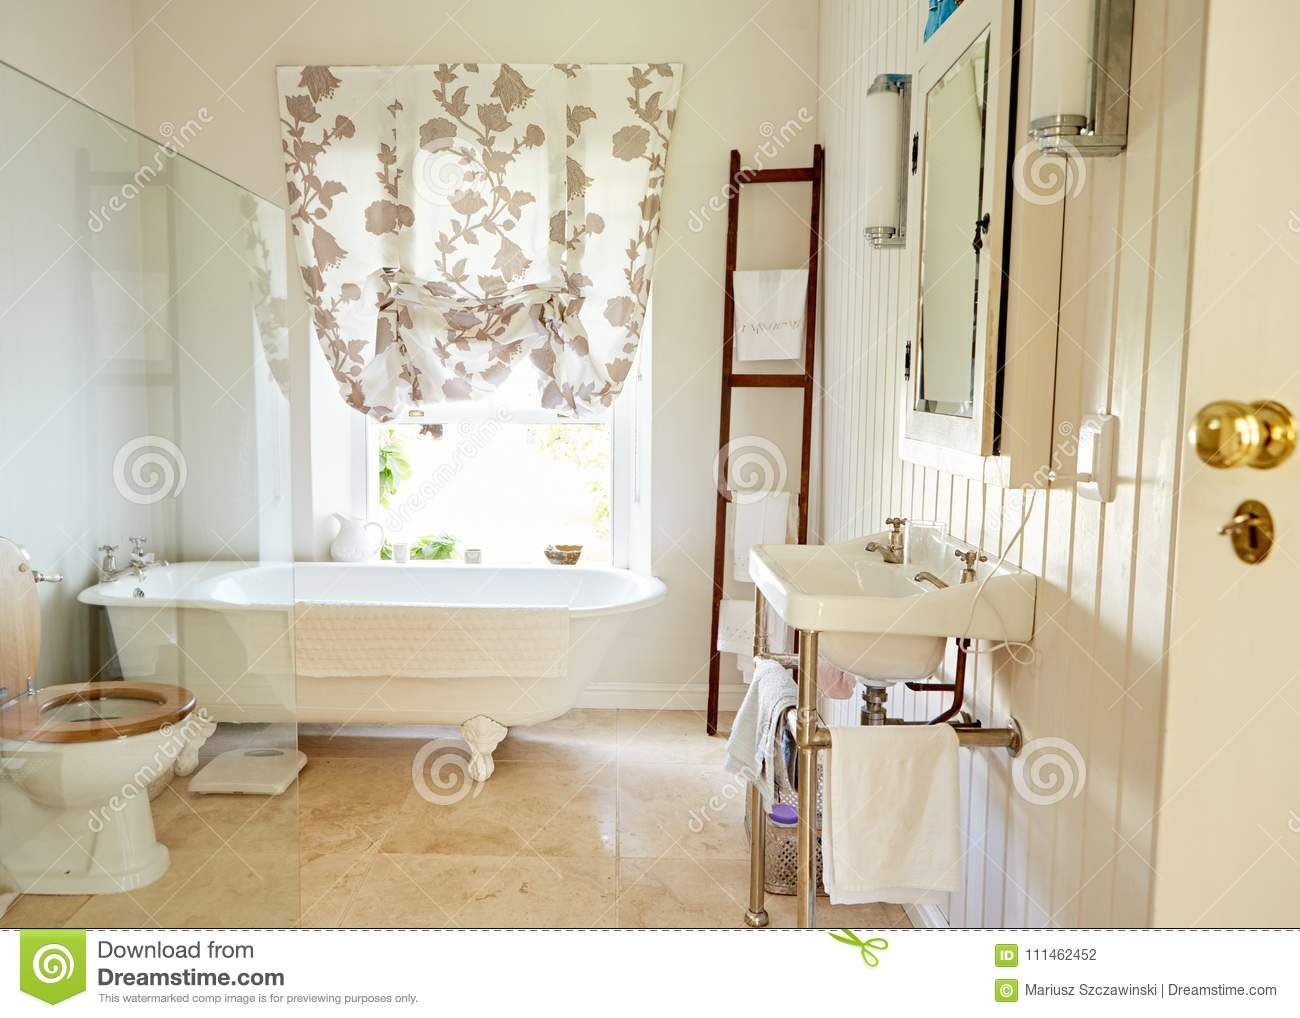 Interno di un bagno stile country spazioso fotografia stock immagine di background for Bagno stile country